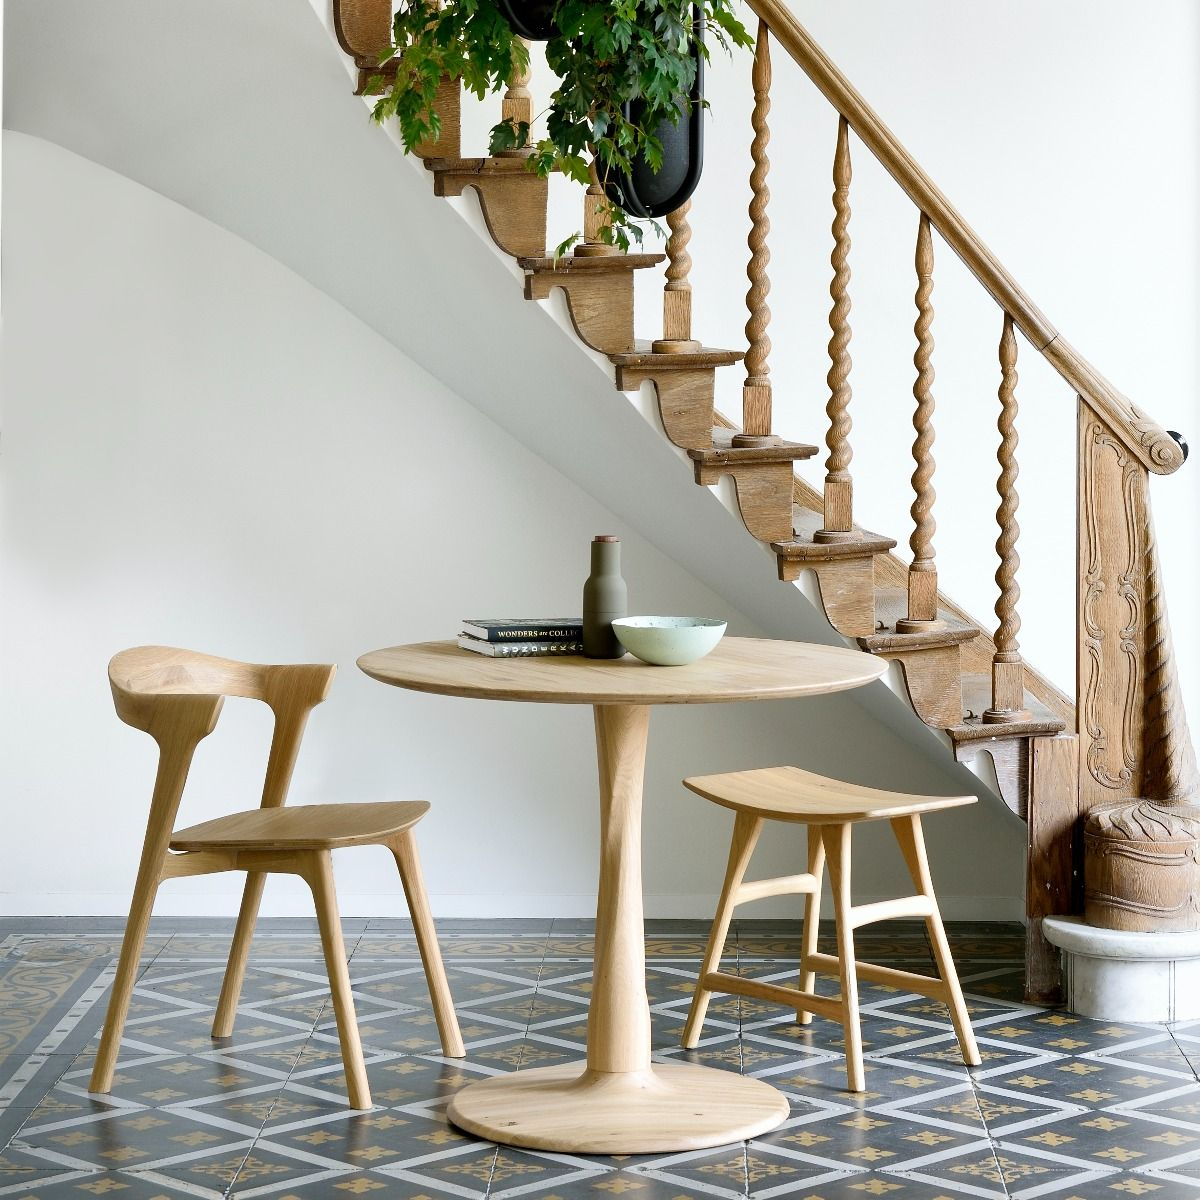 Ethnicraft Torsion Table in Oak in hall with bok chair and osso stool